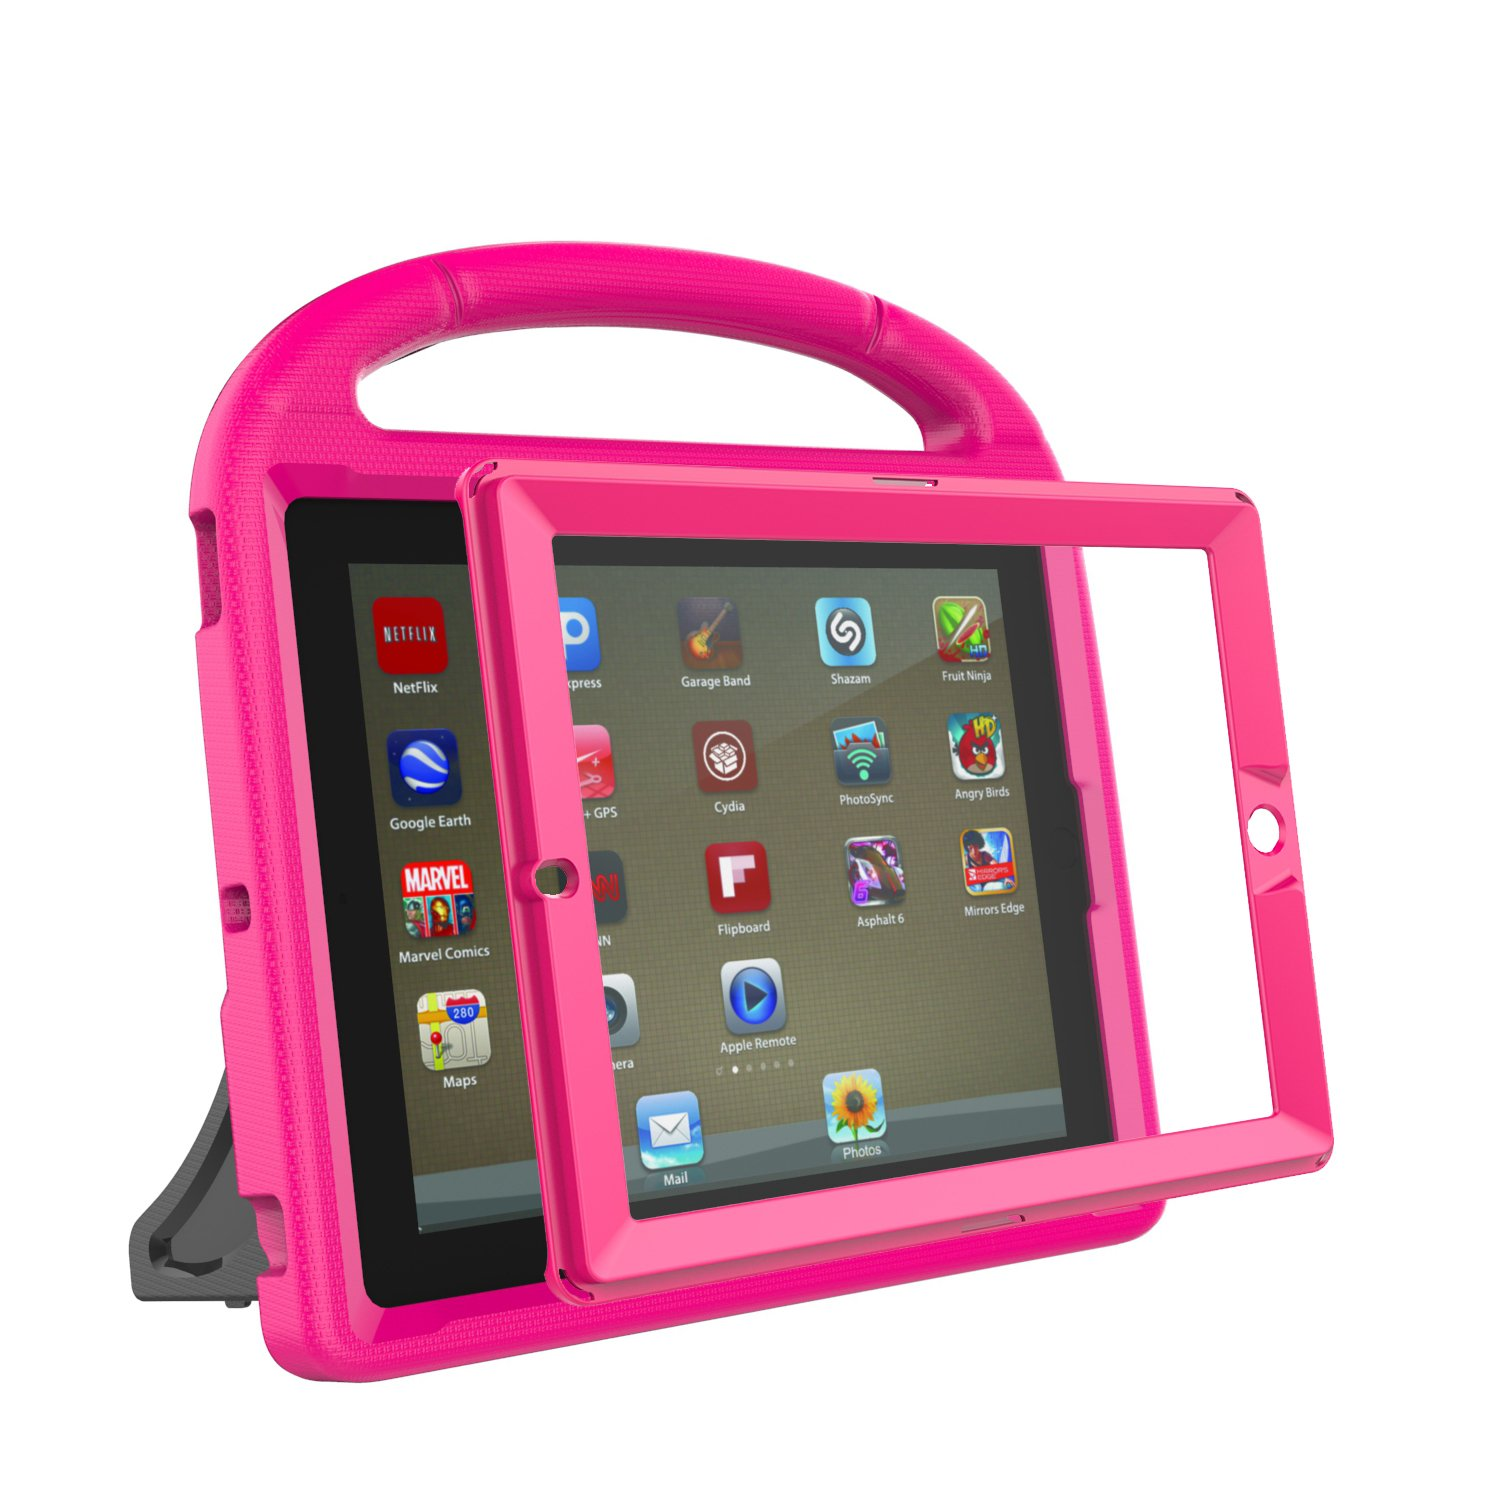 LTROP iPad 2 3 4 Kids Case - Light Weight Shock Proof Handle Friendly Convertible Stand Kids Case with Bulit in Screen Protector for iPad 2, iPad 3rd Generation, iPad 4th Generation,Rose by LTROP (Image #4)